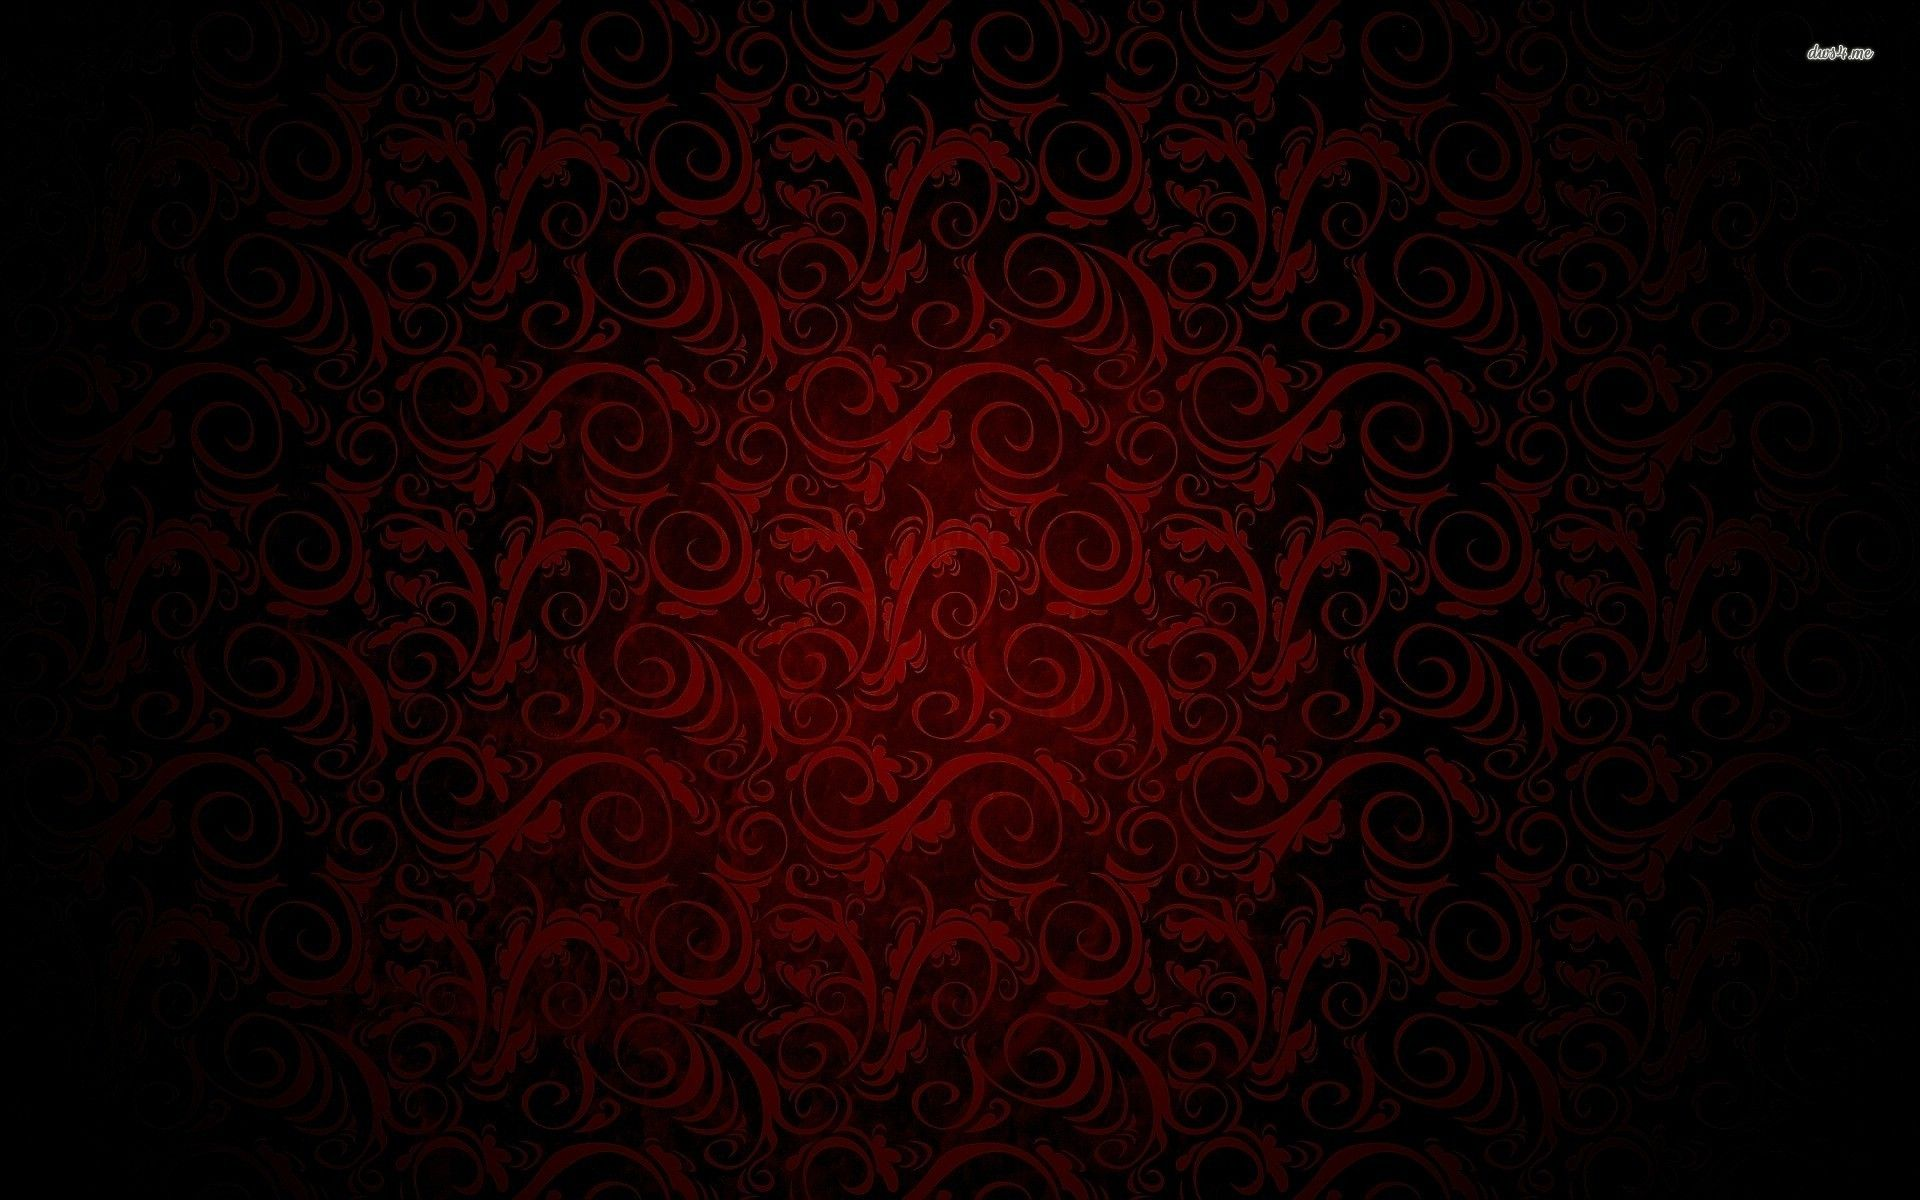 1920x1200 Swirling royal pattern wallpaper - Abstract wallpapers ...